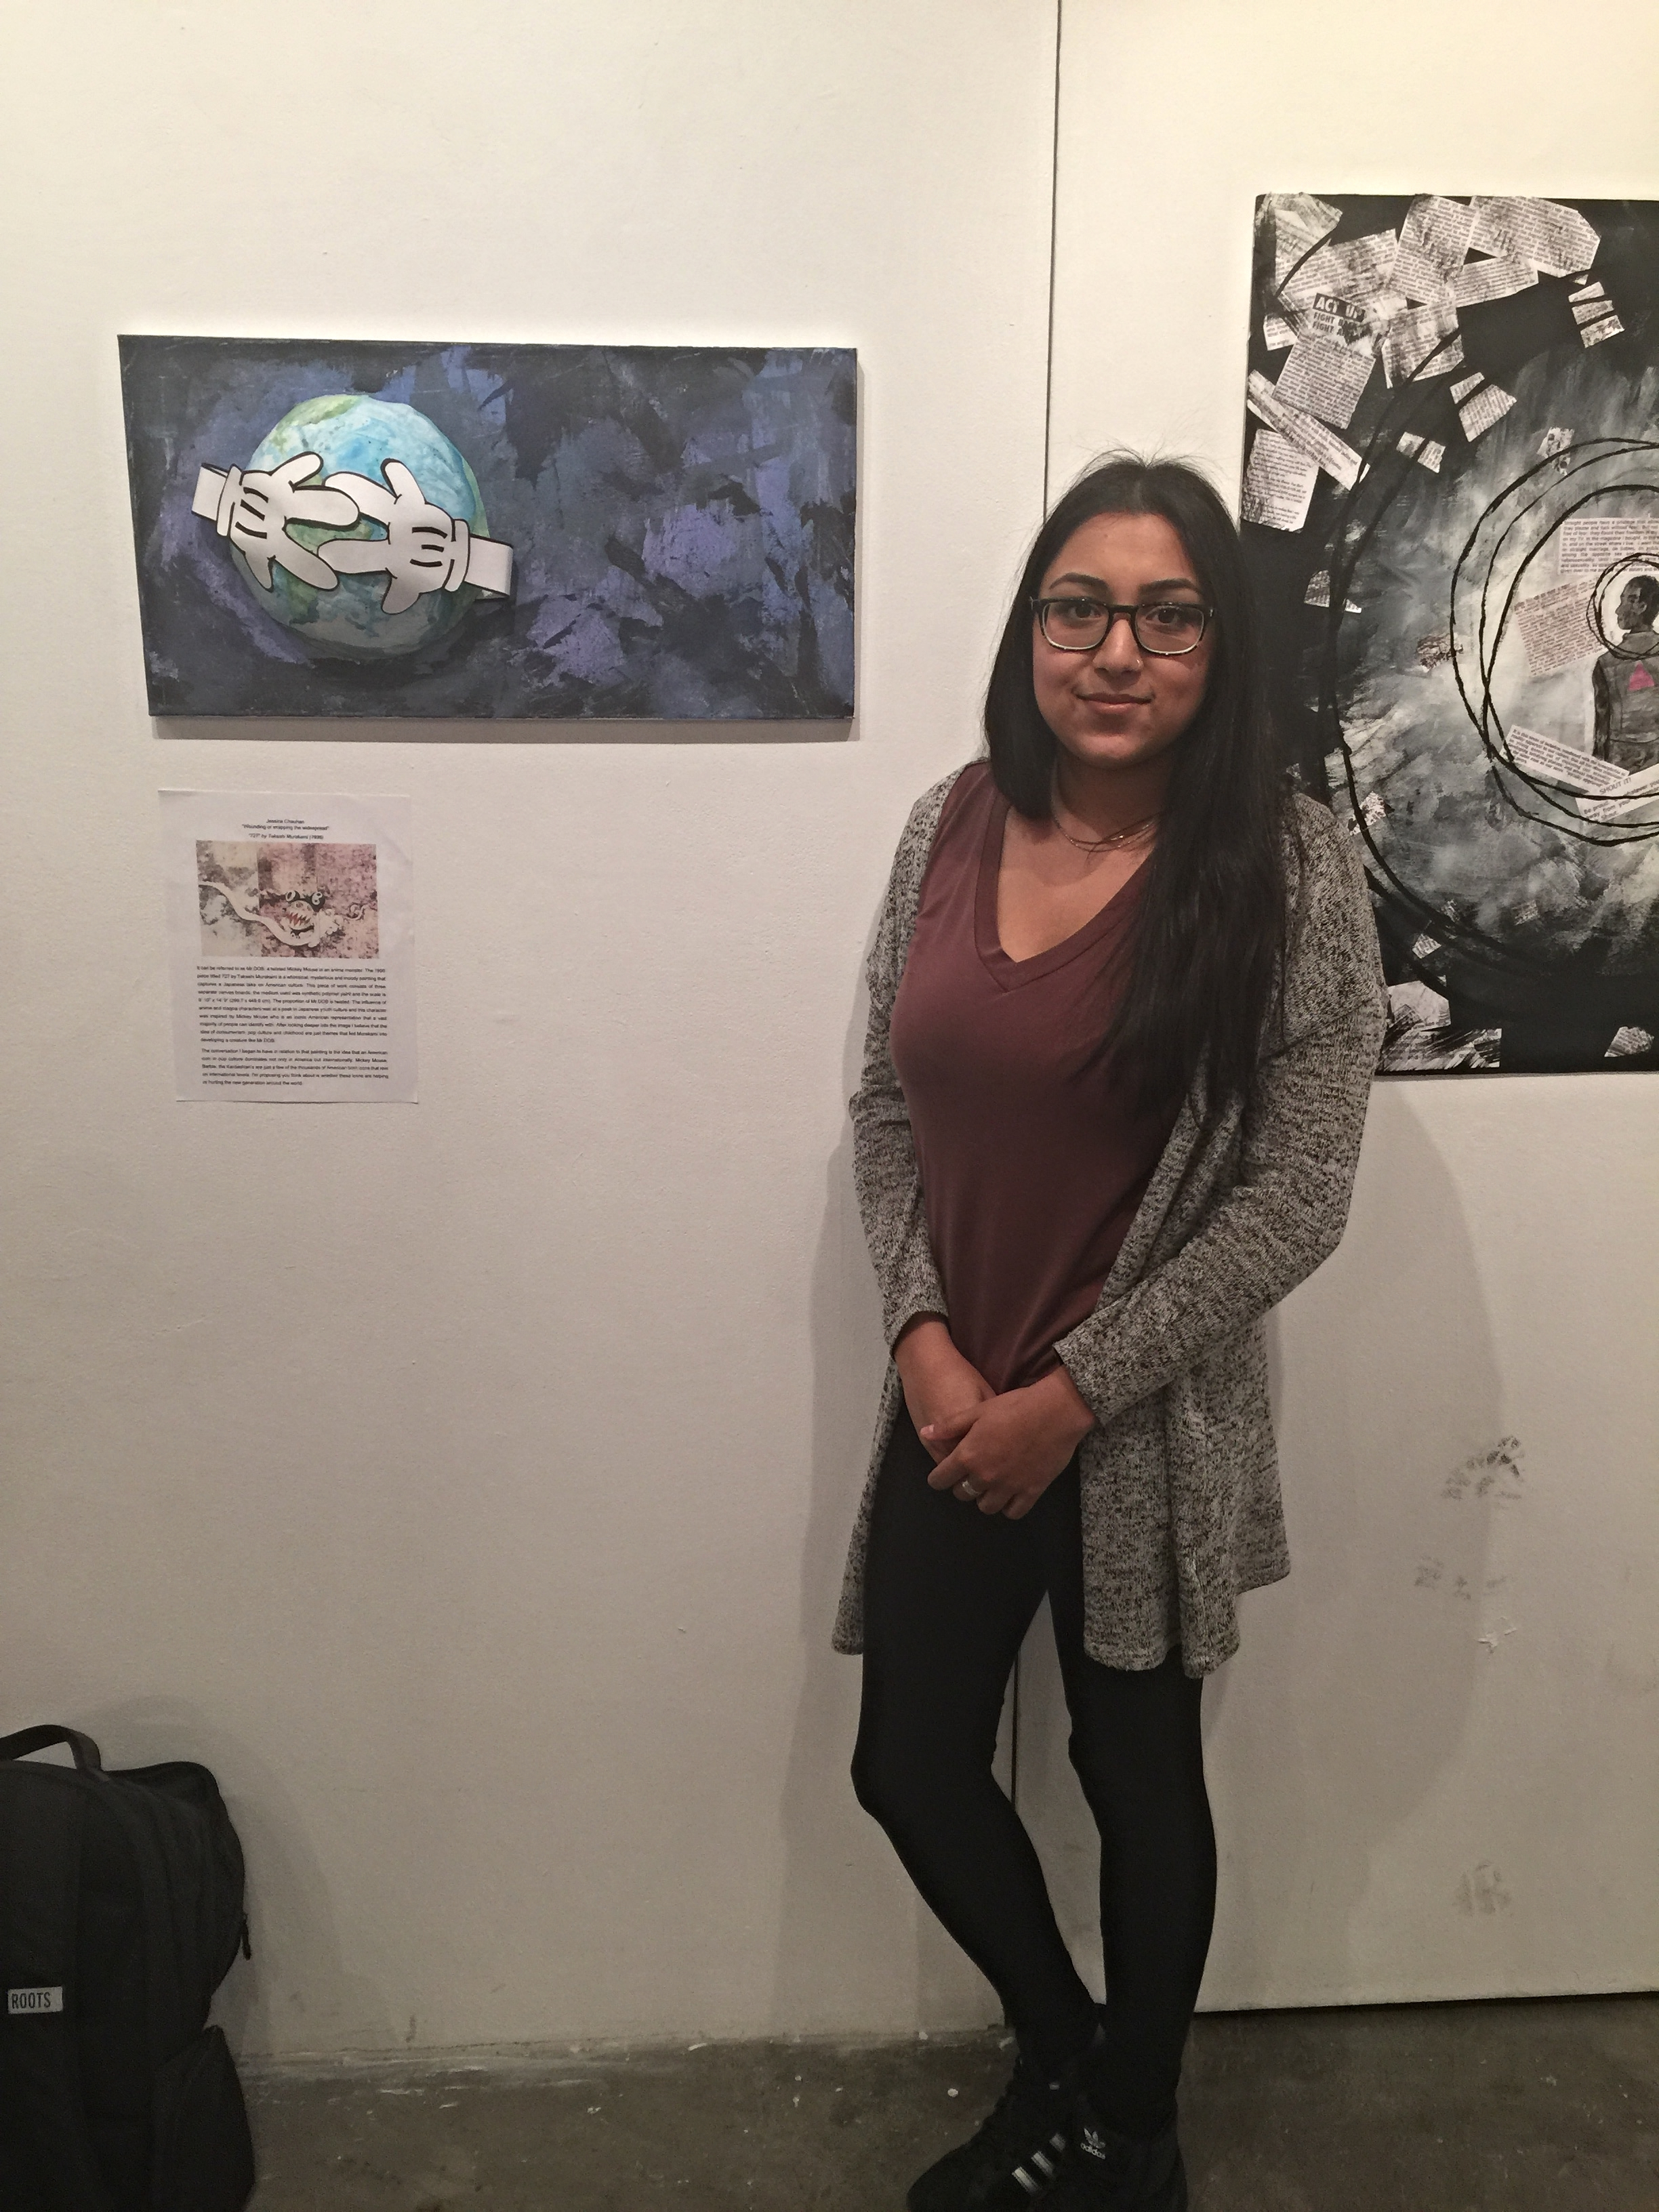 """Jessica standing with the art work she exhibited at KPU as part of the """"Talking Back"""" exhibition ahead of the trip portion of the field school."""